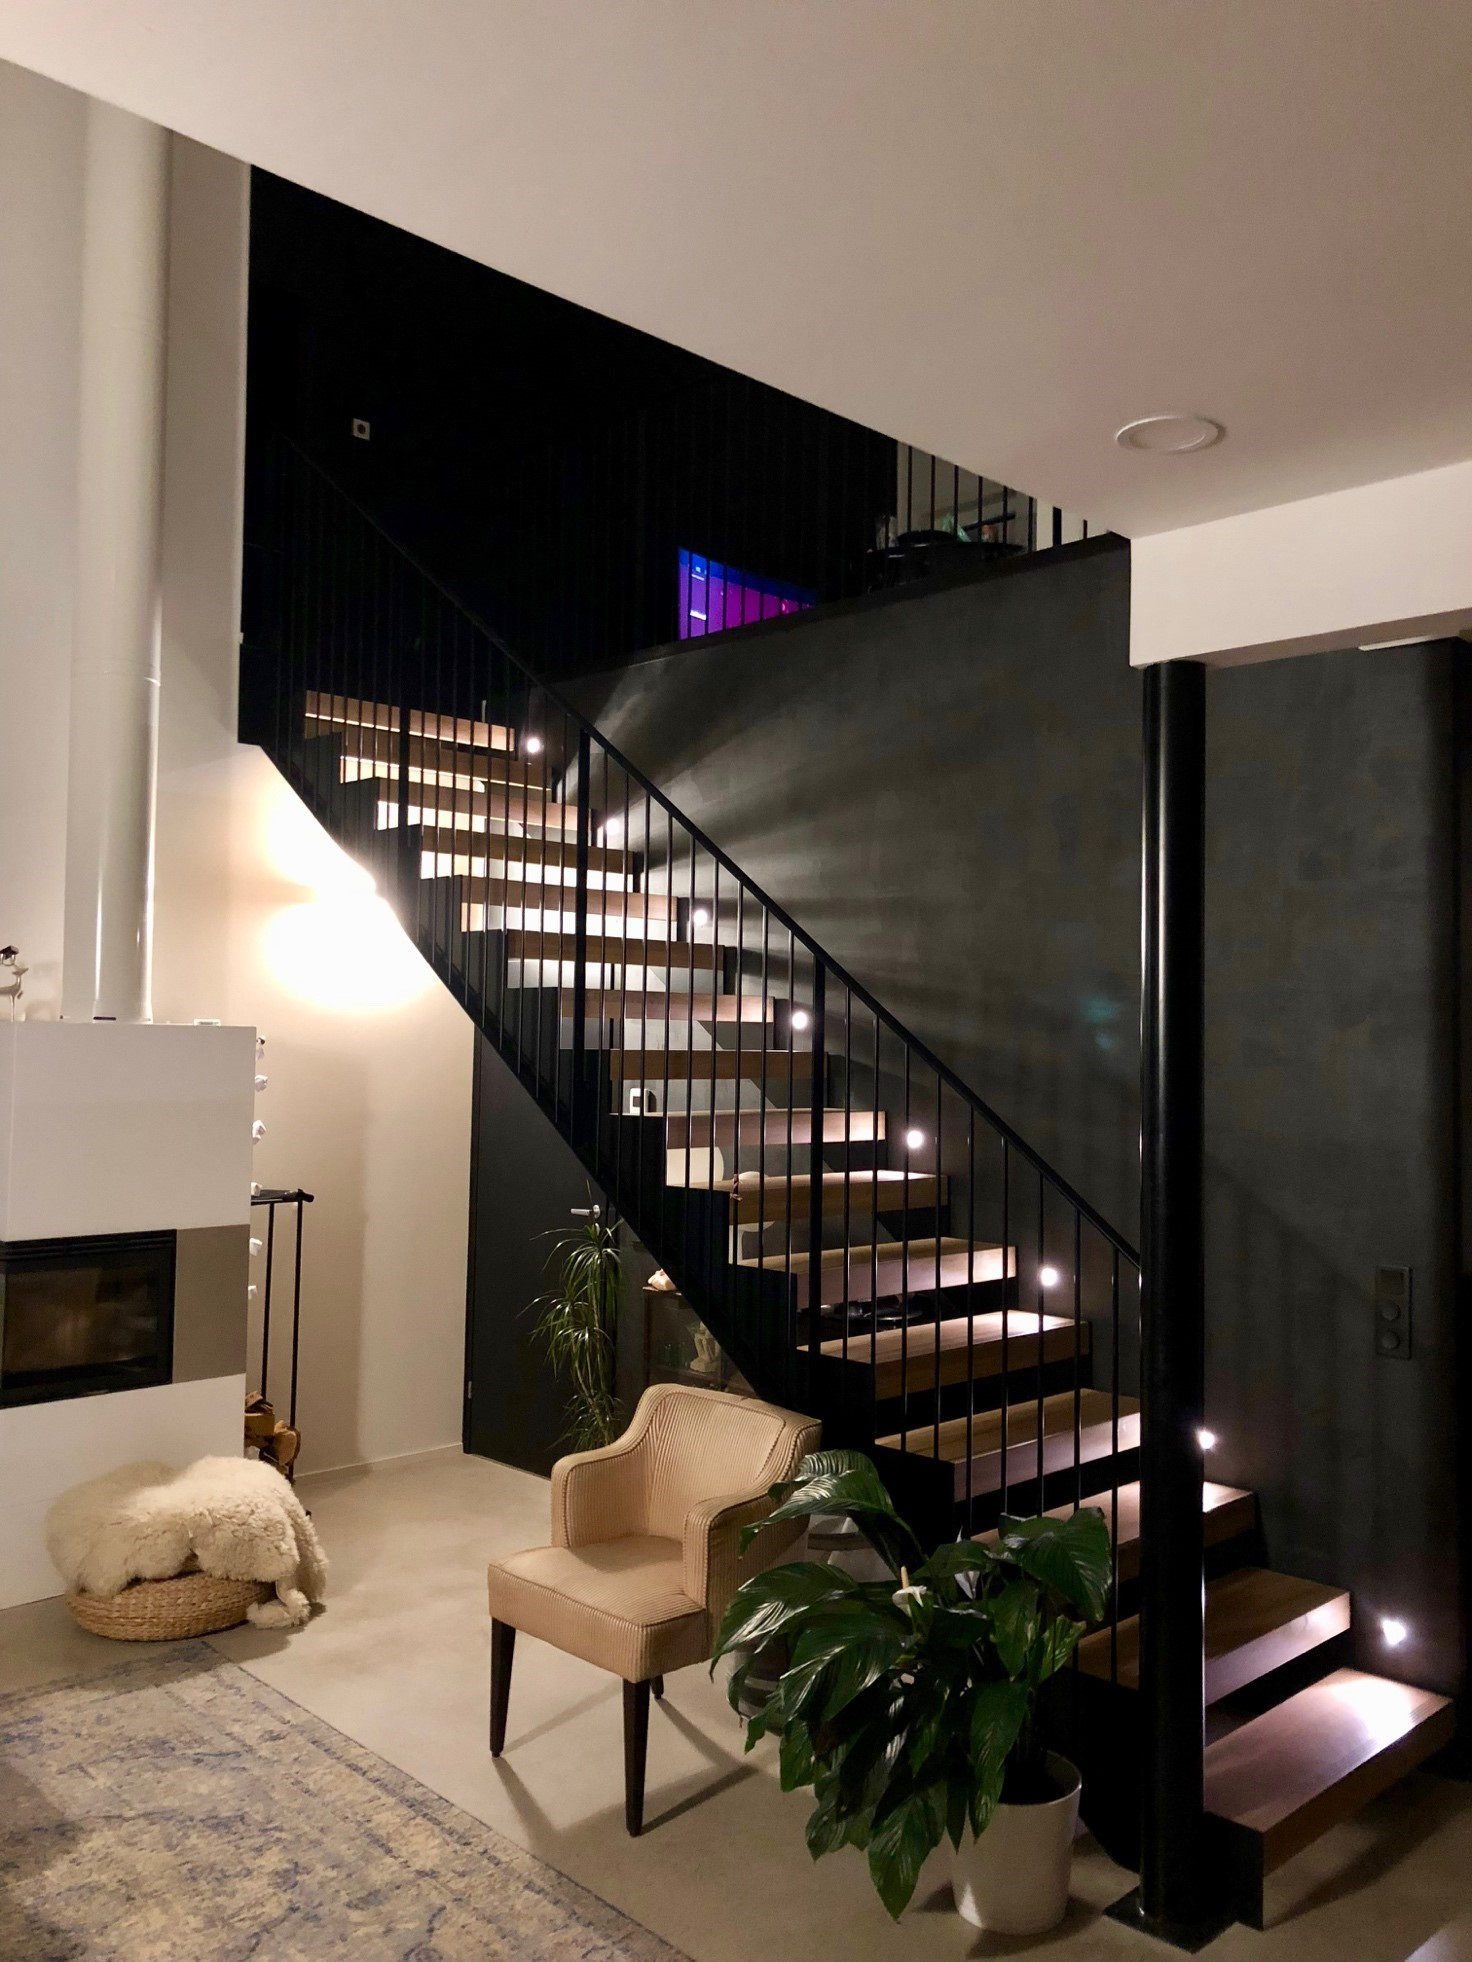 Designing light for stairs on gold house design, extra house design, neutral house design, brew house design, ph house design, aerodynamic house design, retro modern house design, high house design, happy house design, death house design, wood house design, puppet house design, chill house design, better house design, regular house design, chakra house design, 19th century house design, food house design, hope house design, draw house design,